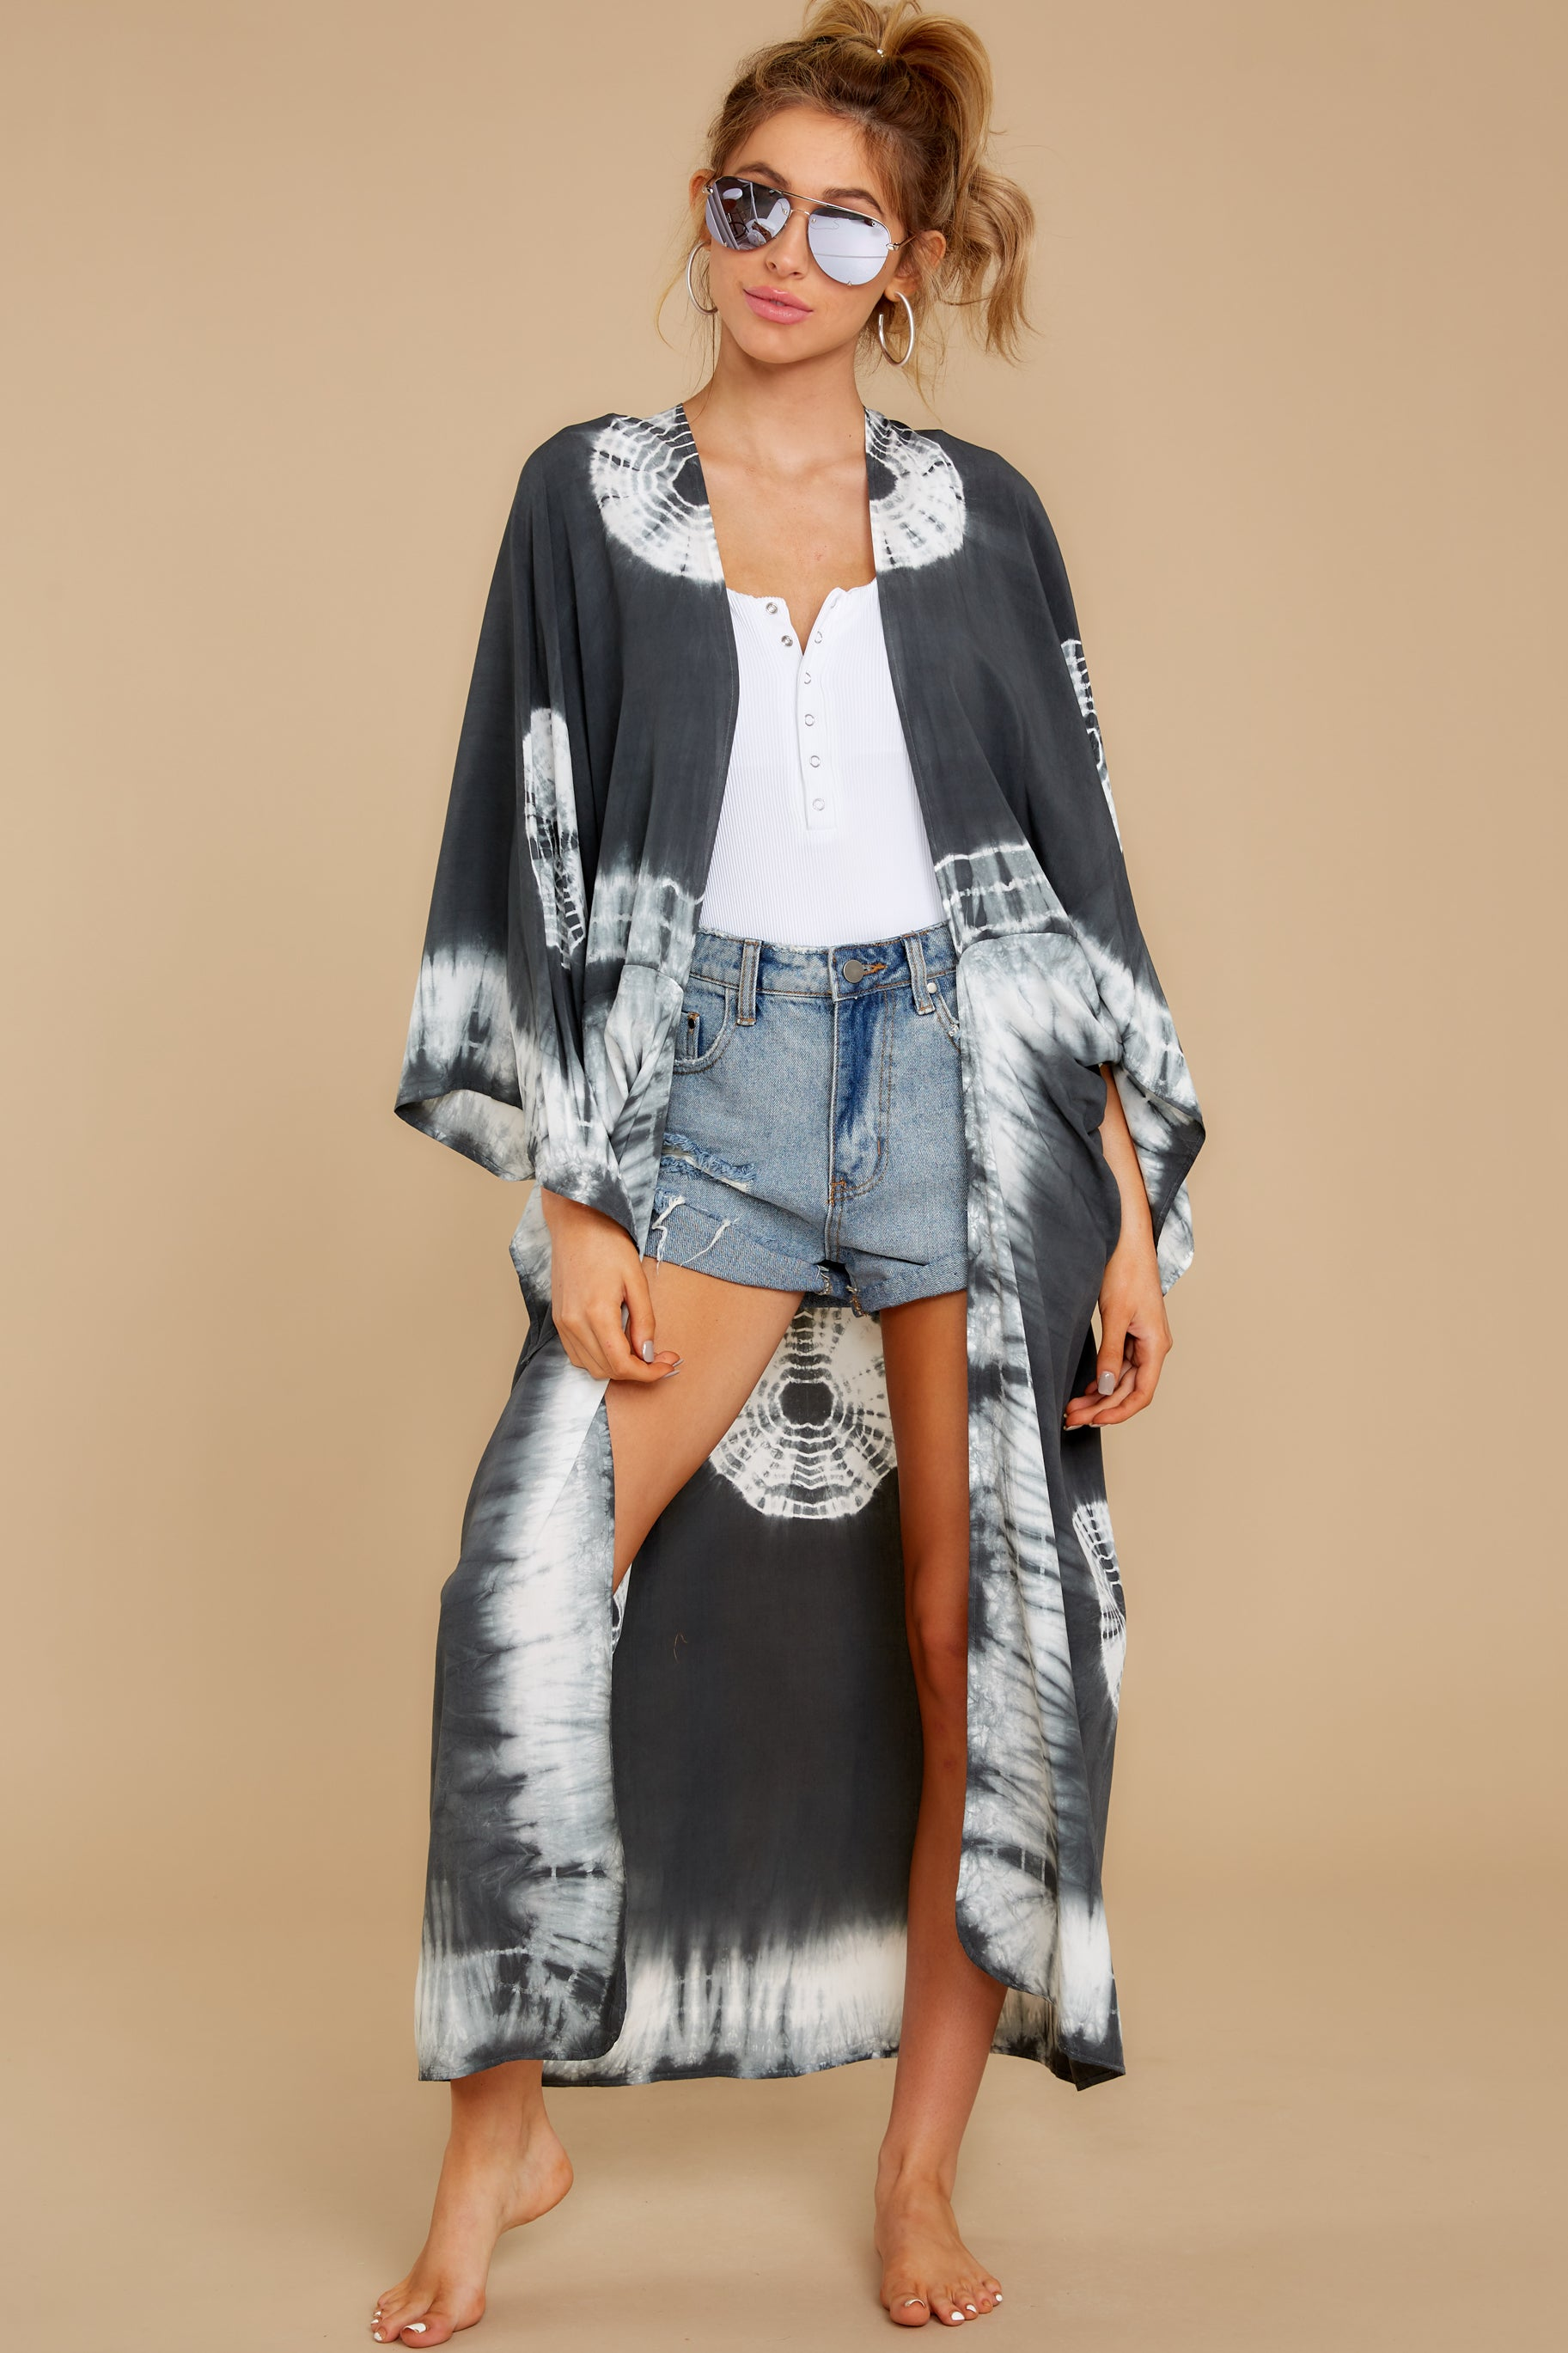 2 Focus On The Good Charcoal Tie Dye Kimono at reddress.com